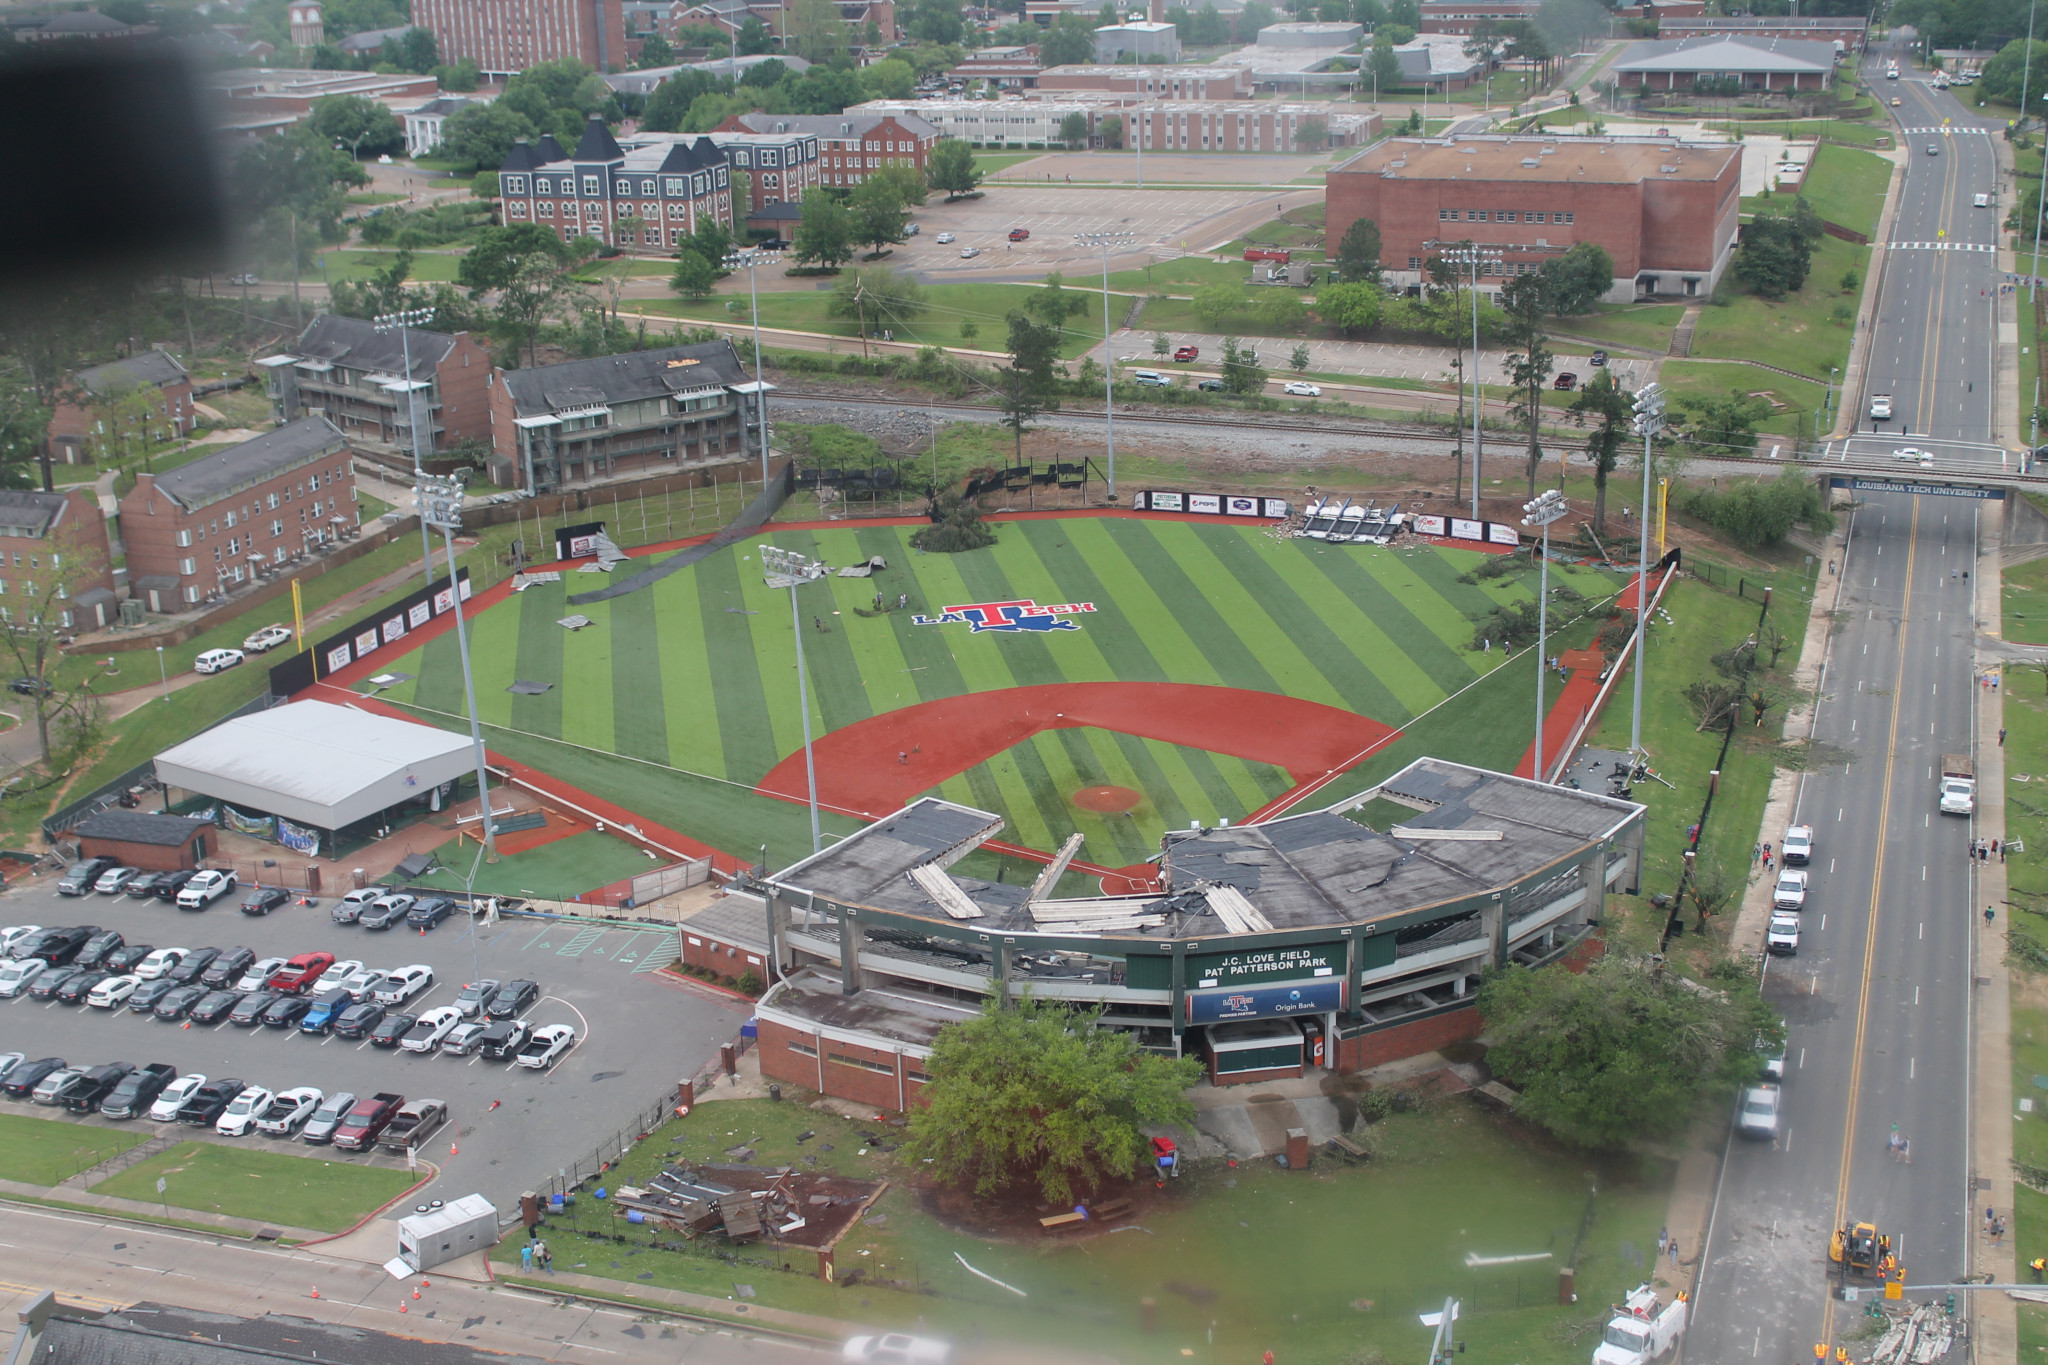 An aerial view from April 25, 2019 of the Louisiana Tech University baseball field.